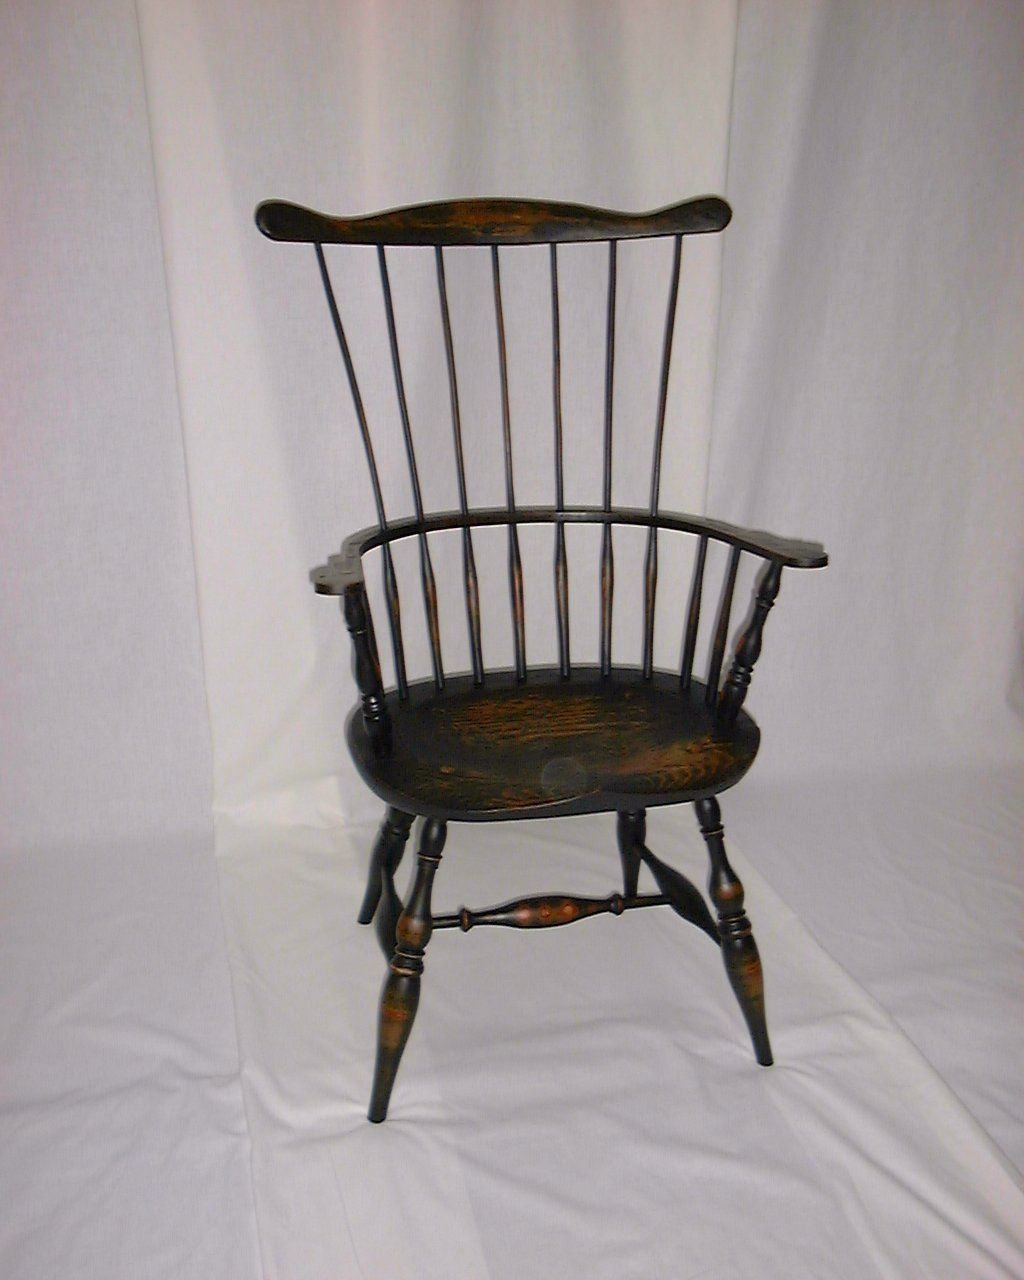 windsor chairs - Bing Images - Windsor Chairs - Bing Images Possible Wood Projects Pinterest